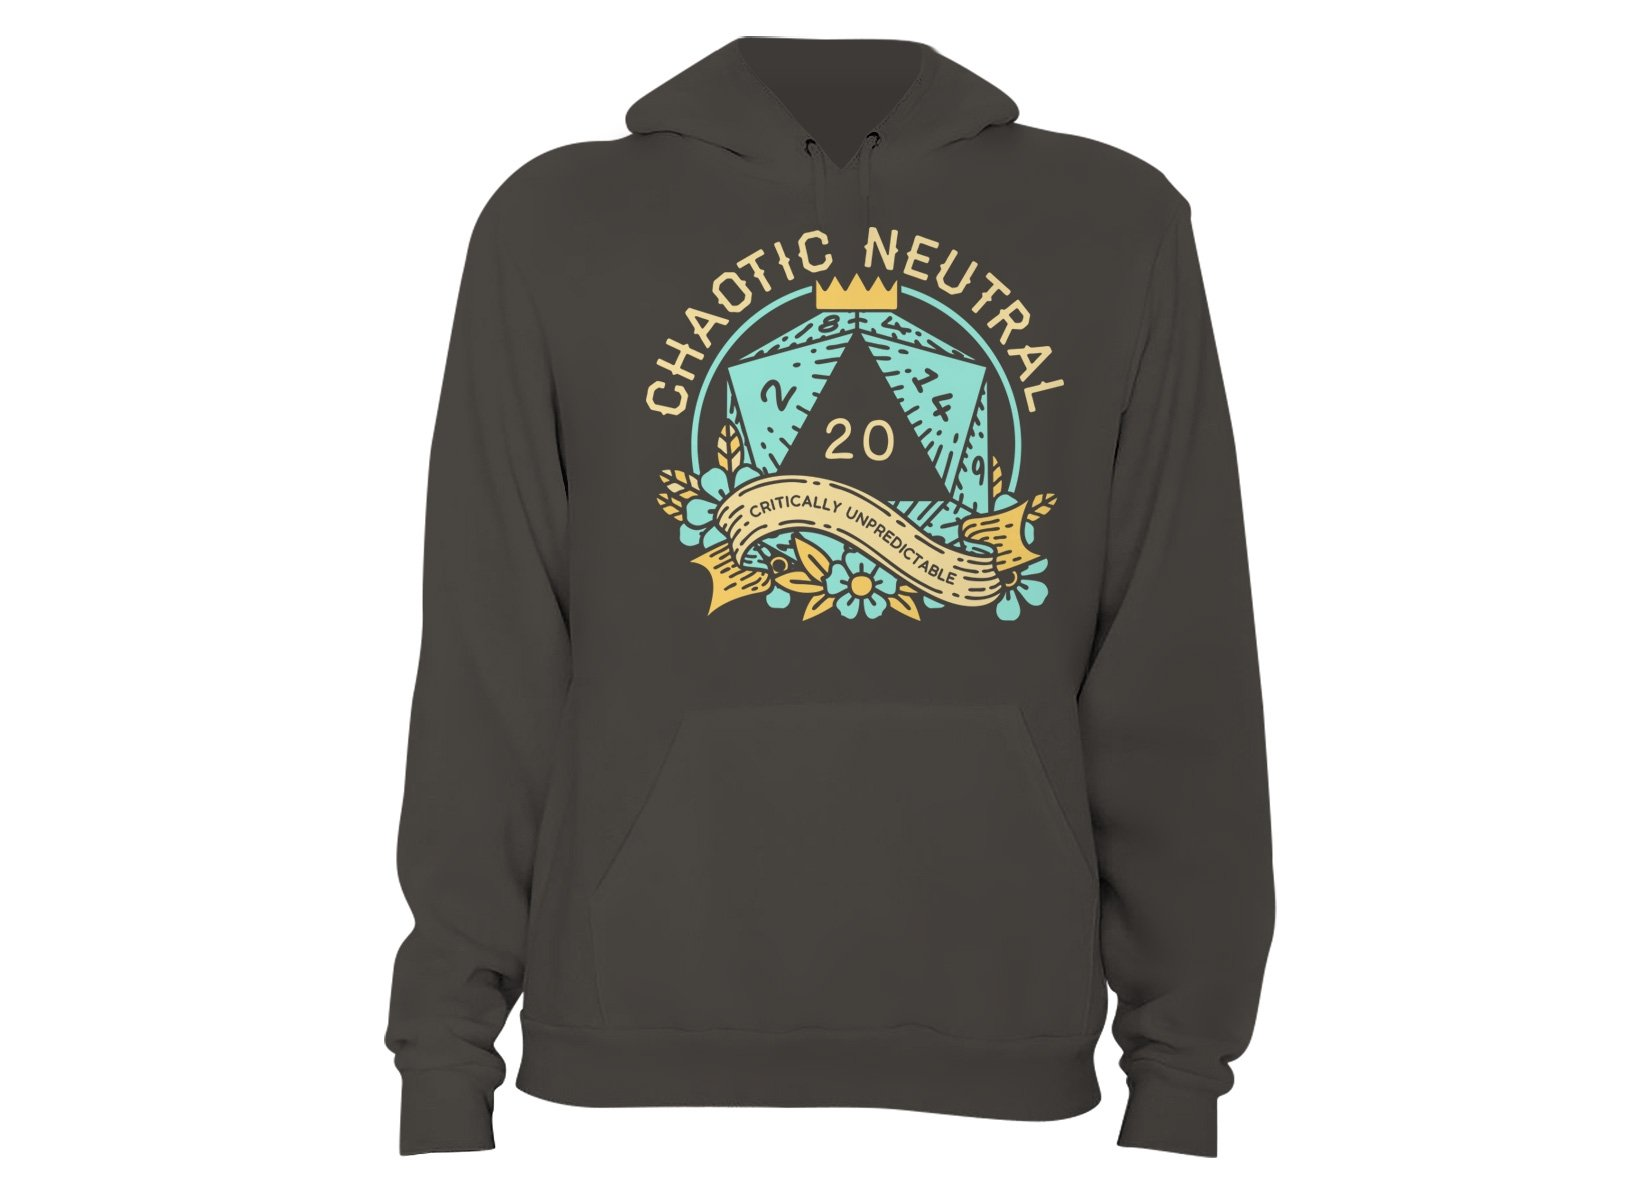 Chaotic Neutral on Hoodie